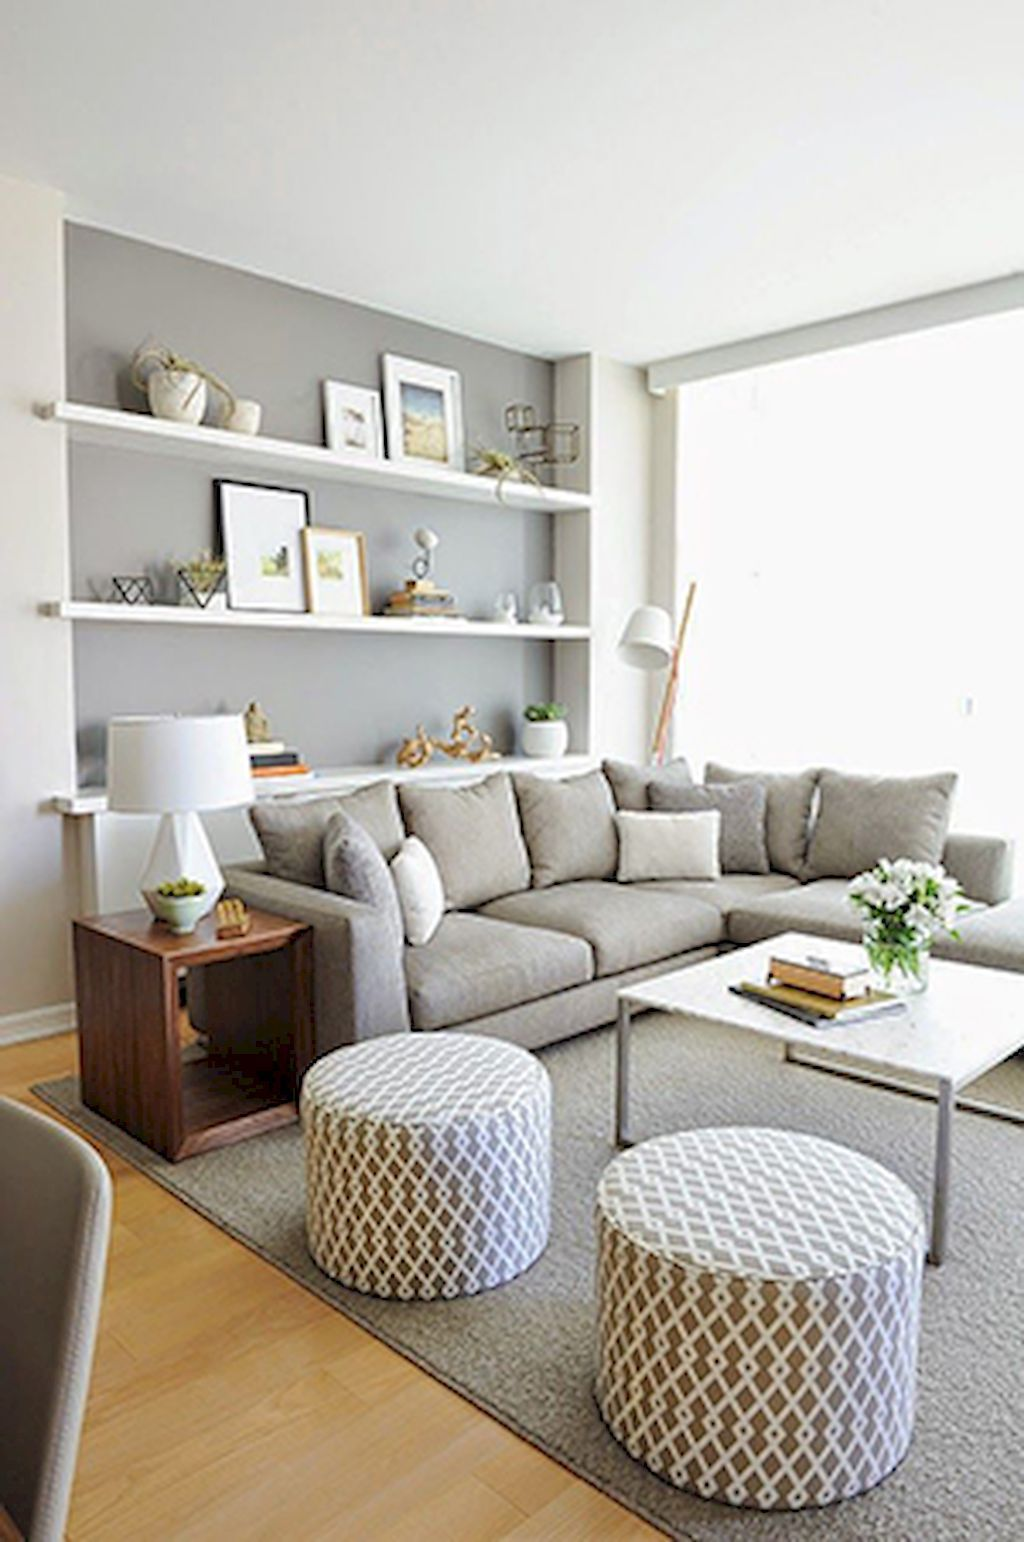 Adorable 66 Stunning Small Living Room Decor Ideas On A Budget  Https://livinking